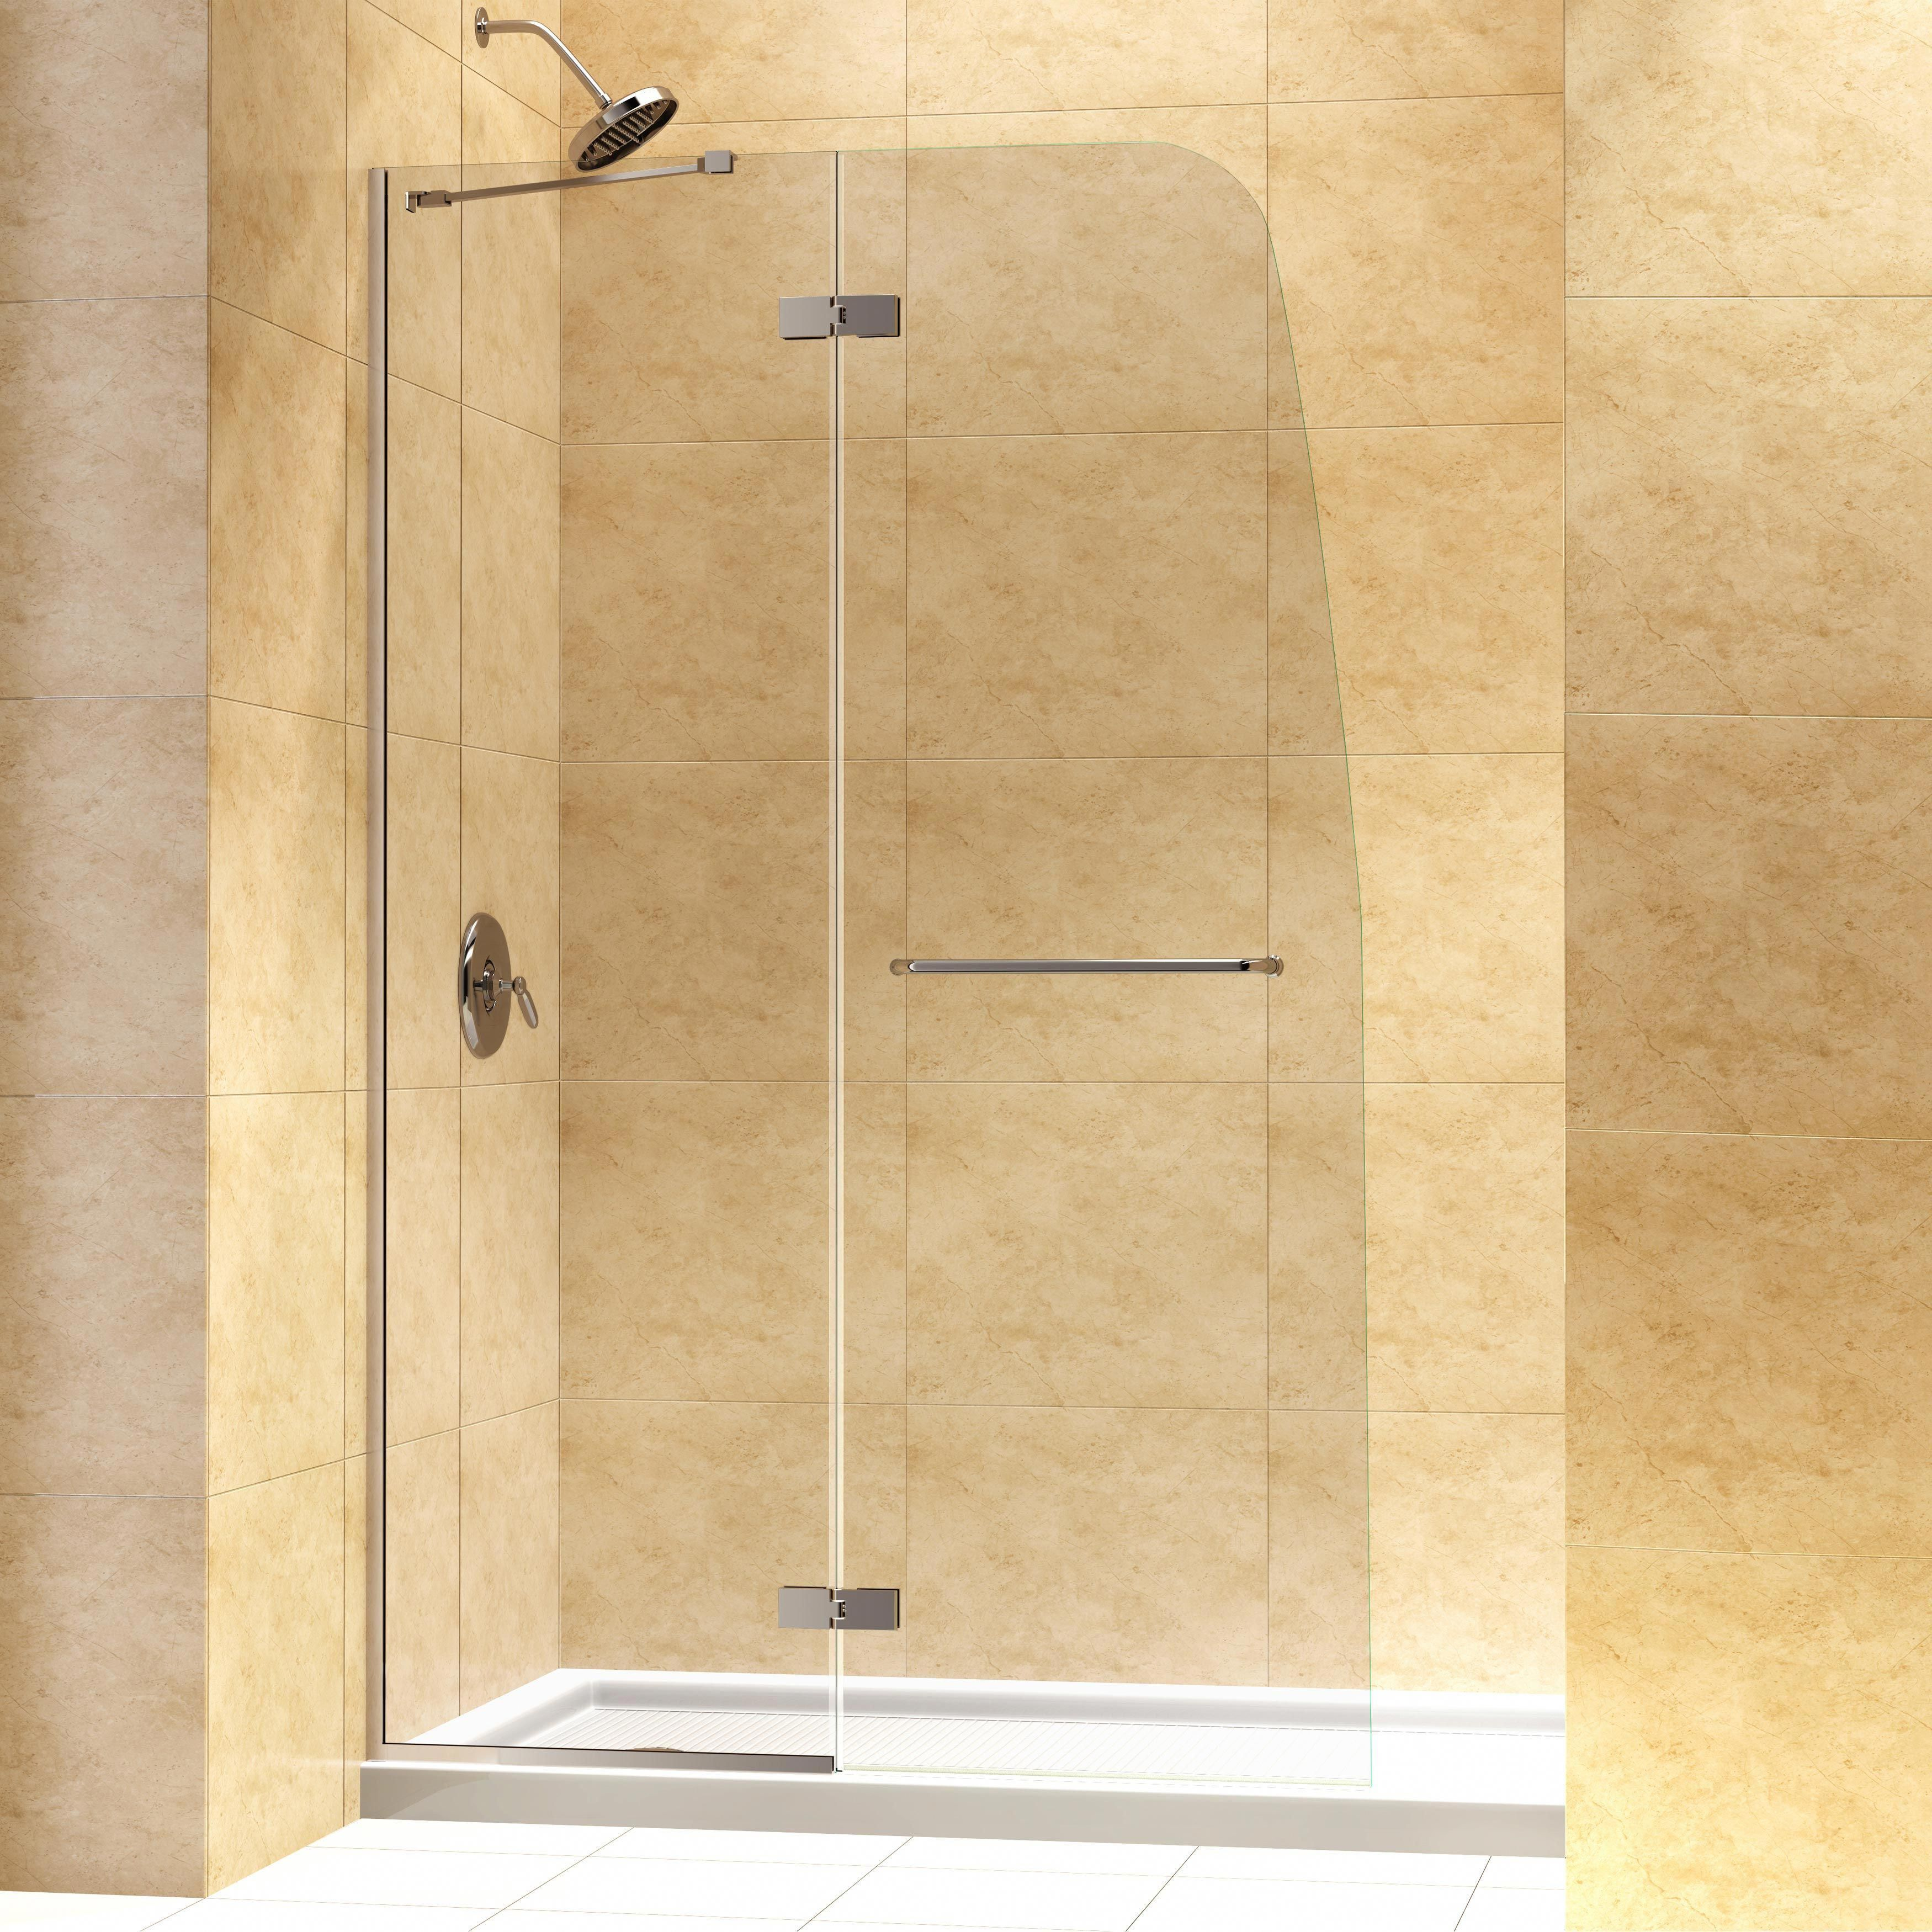 Now I M Truly Looking Forward To Attempting All Of This Walk In Shower Small In 2020 Clear Glass Shower Door Frameless Hinged Shower Door Glass Shower Doors Frameless